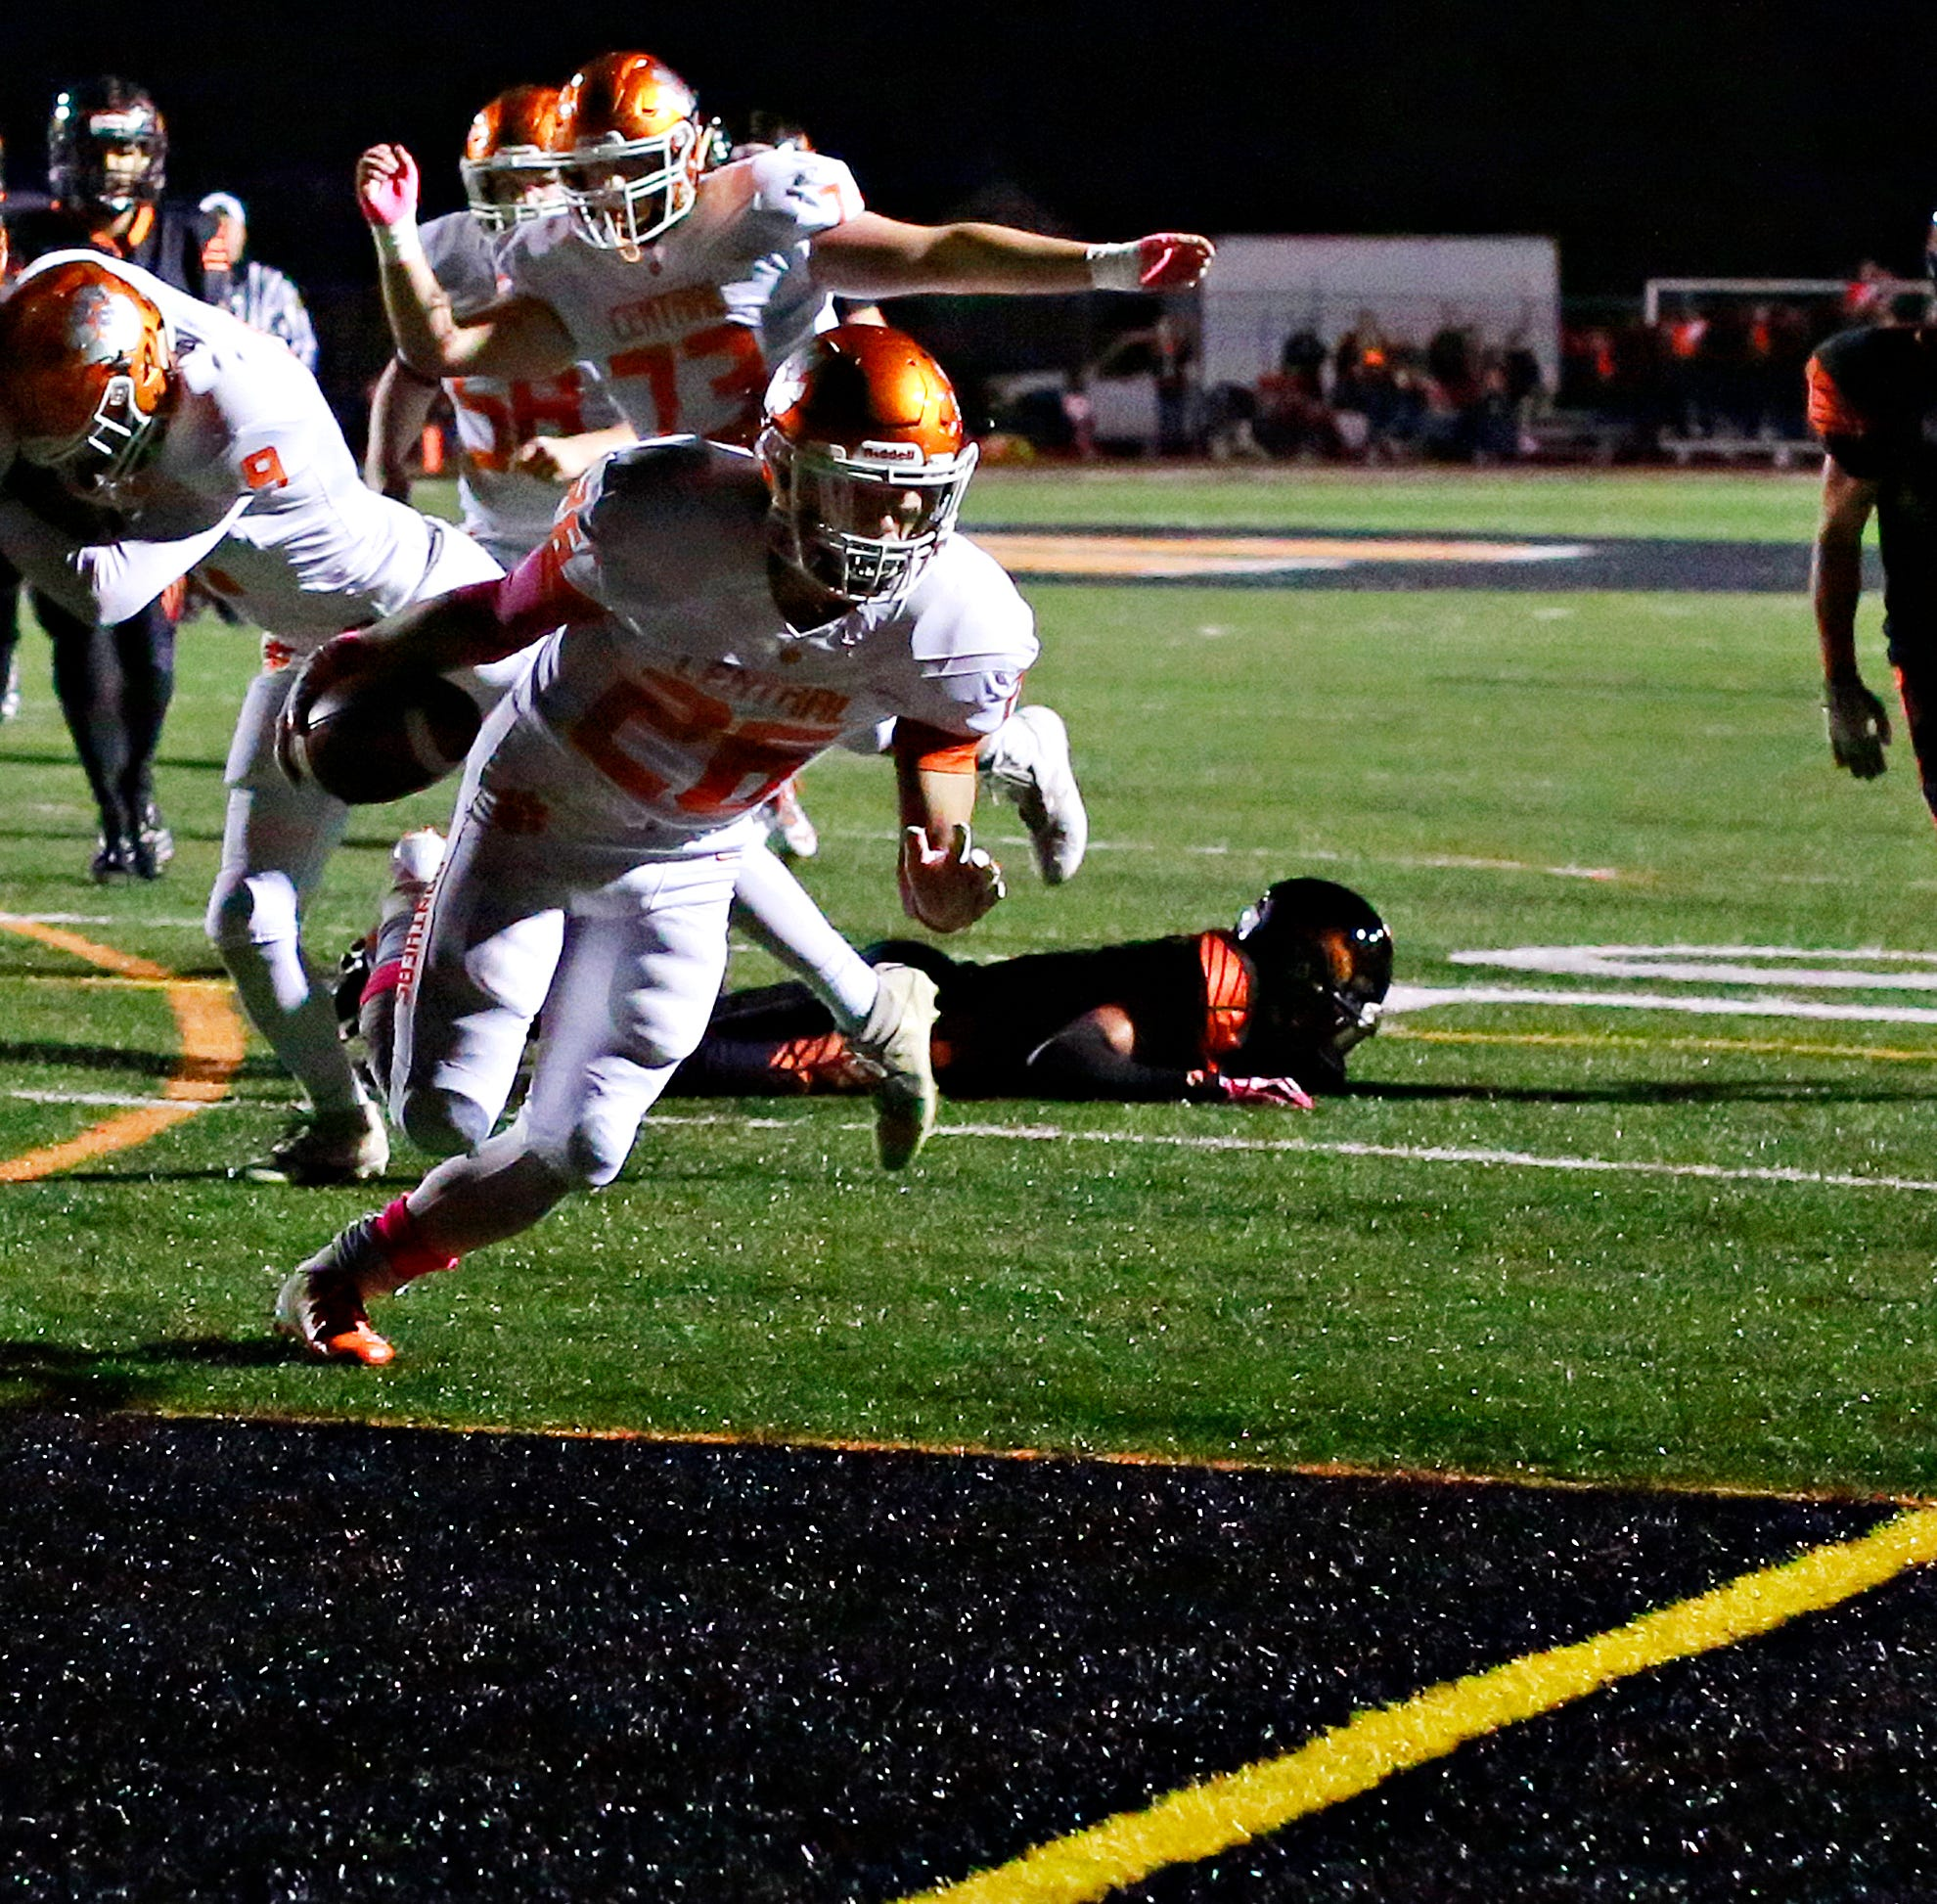 Central York runs for five touchdowns in blowout win over Northeastern